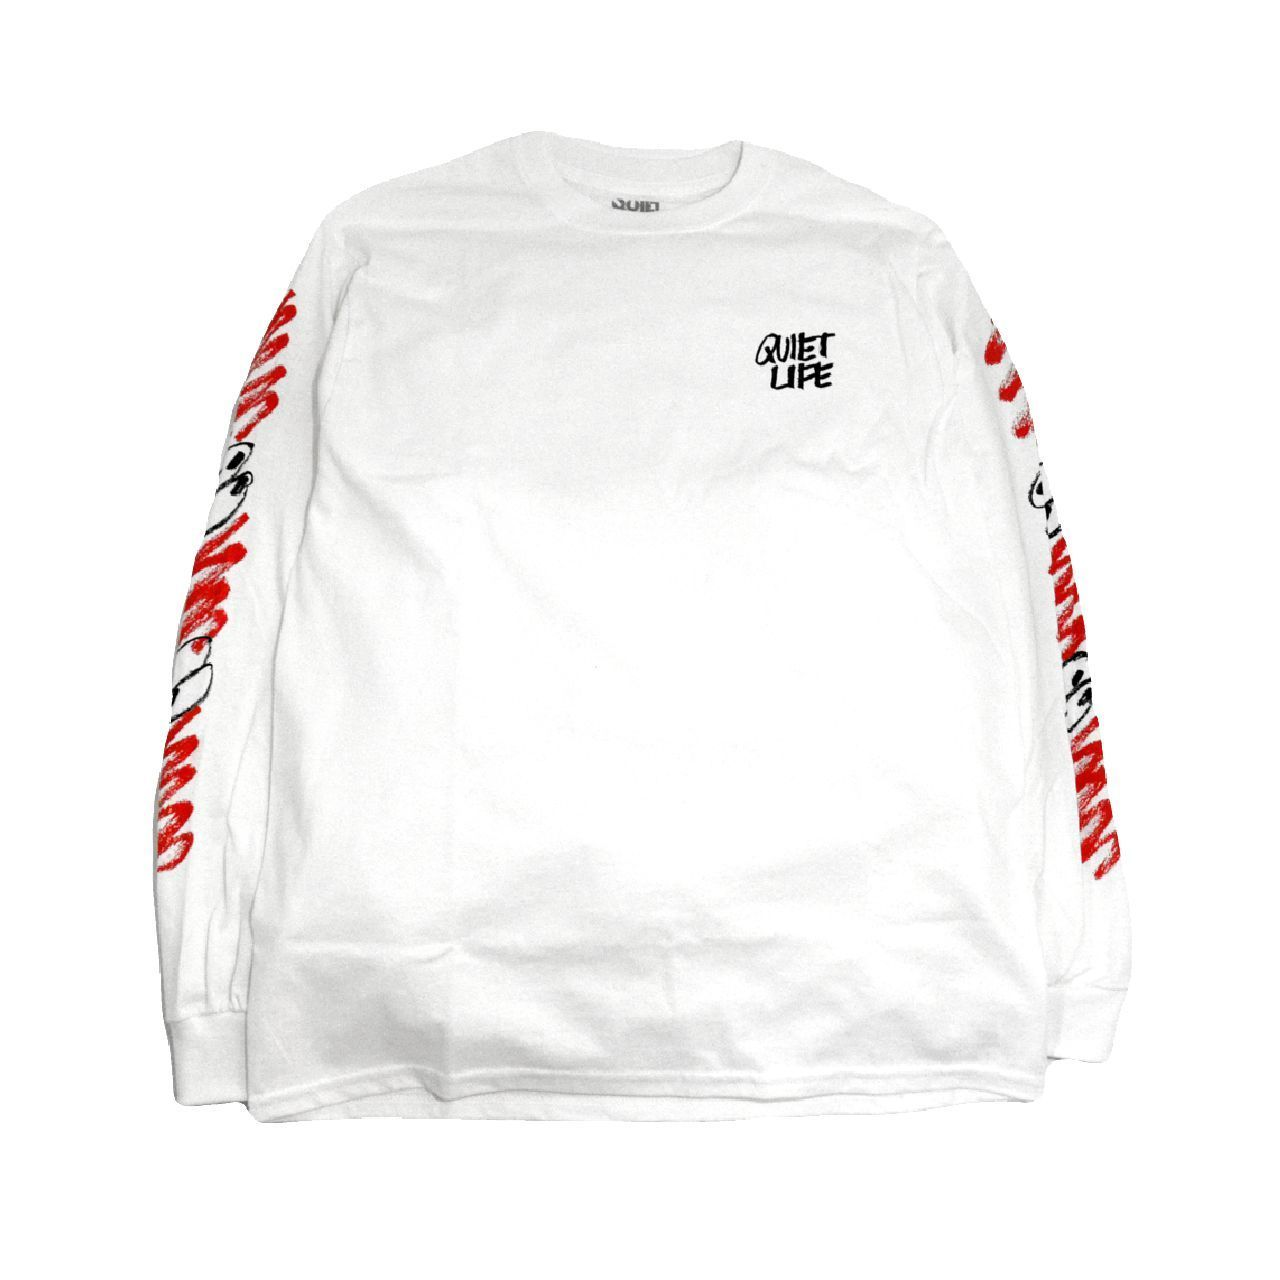 THE QUIET LIFE L/S T-SHIRTS (THE QUIET LIFE X JAMES JARVIS) WHITE